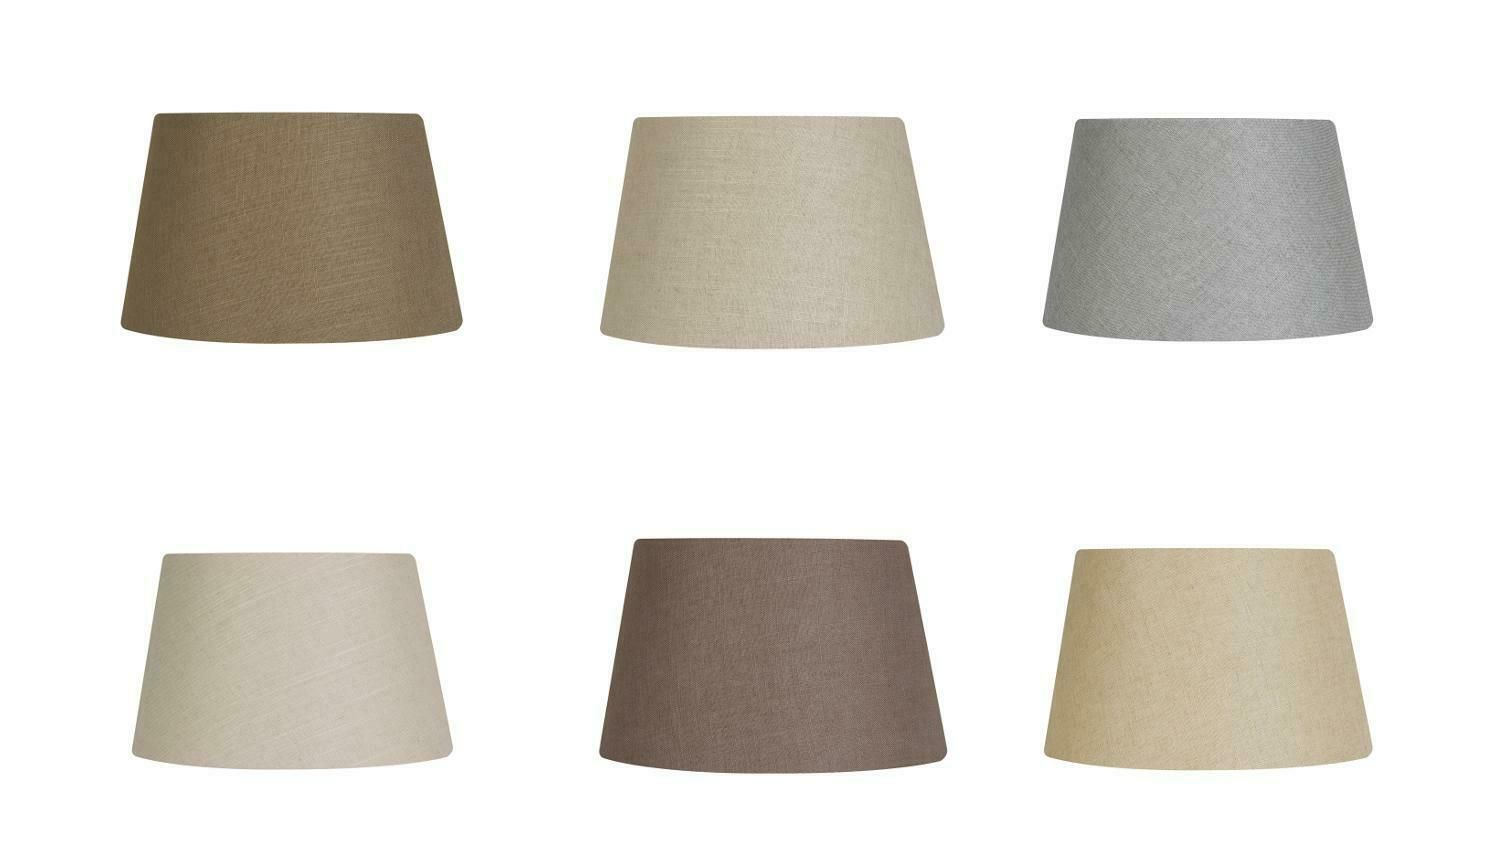 Details About Linen Texture Fabric Drum Lampshade Table Ceiling Light Shade 8 10 12 14 16 Inch Ceiling Light Shades Drum Lampshade Lamp Shades